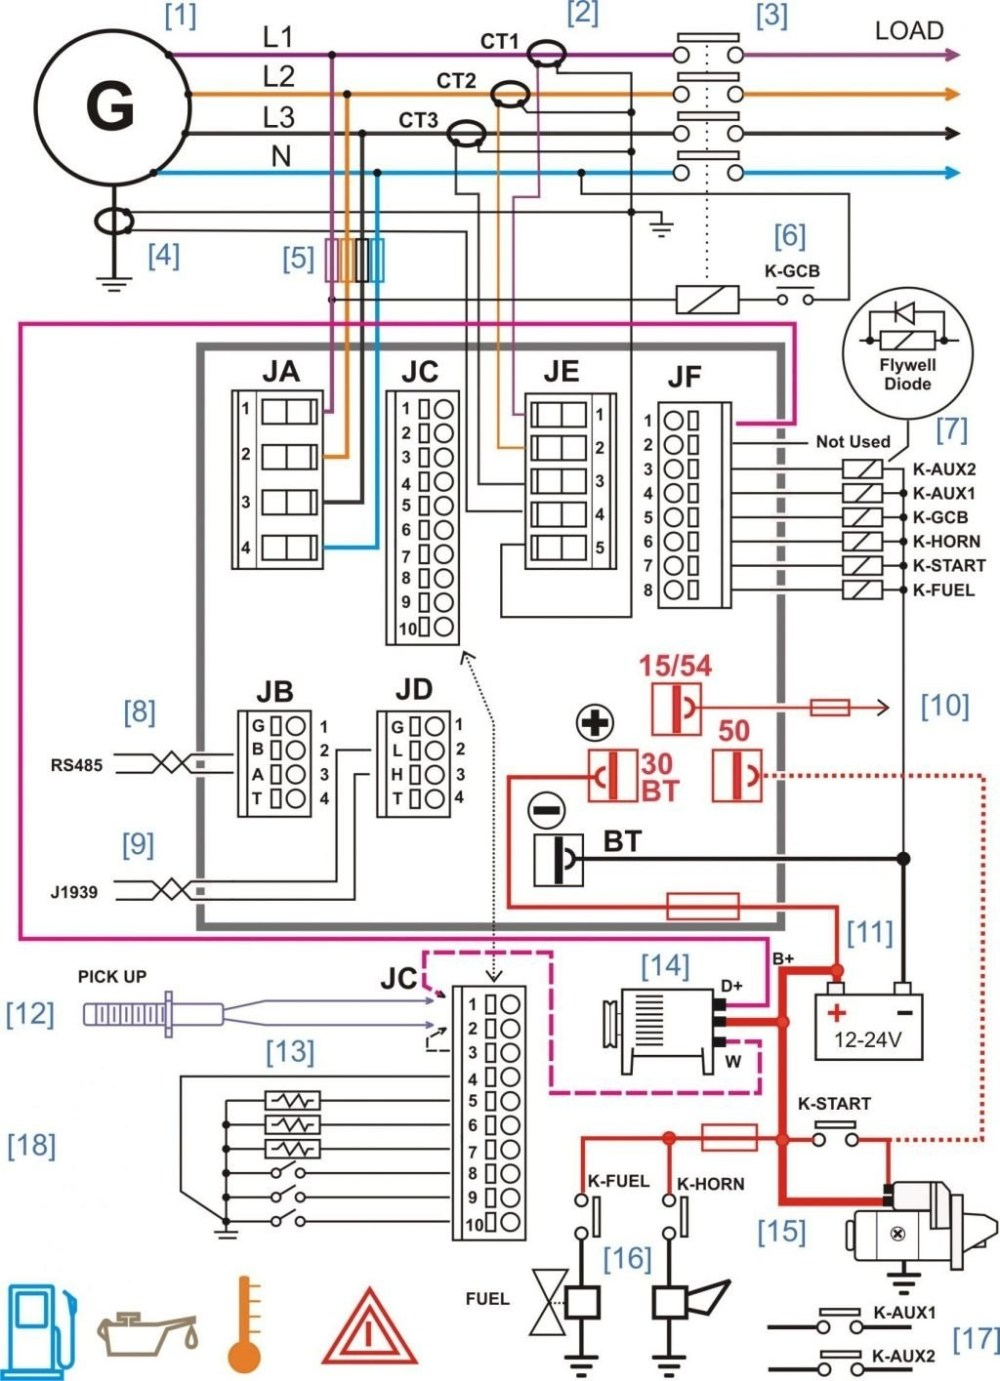 medium resolution of peterbilt 389 radio wiring diagram residential electrical symbols u2022 peterbilt 388 wiring diagram peterbilt 389